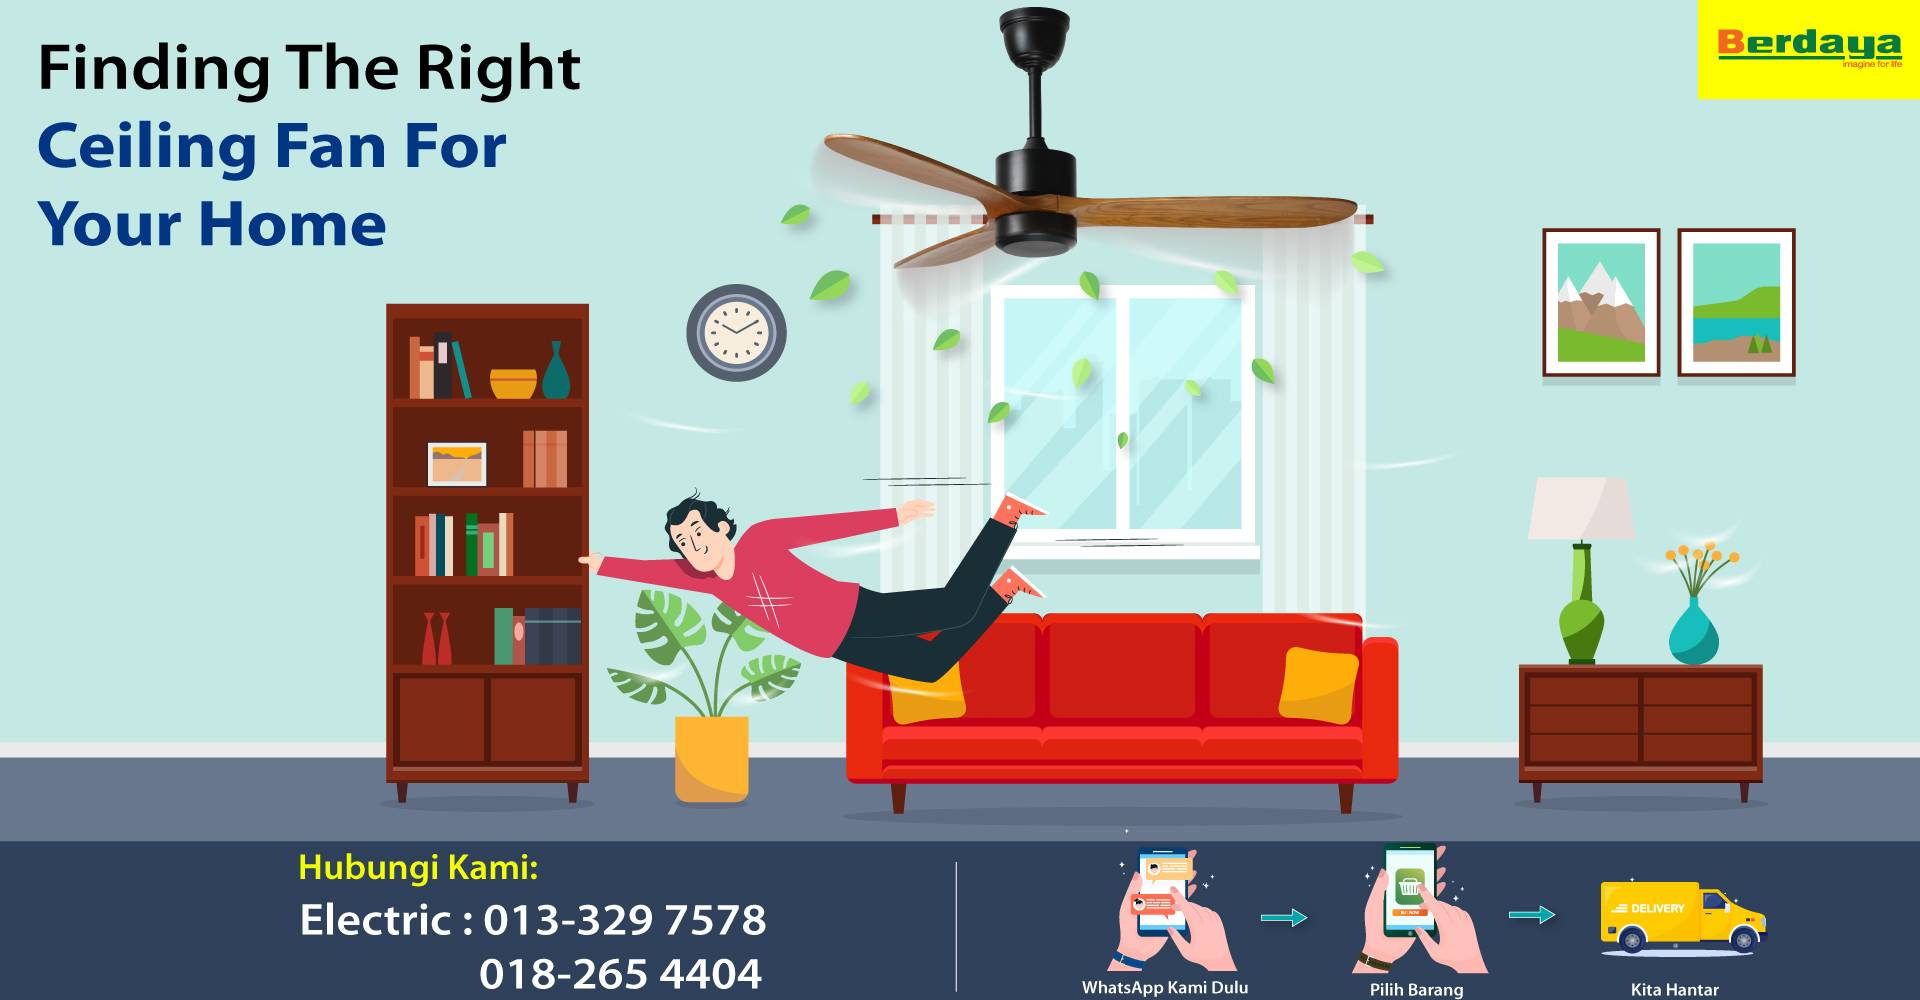 Finding The Right Ceiling Fan For Your Home